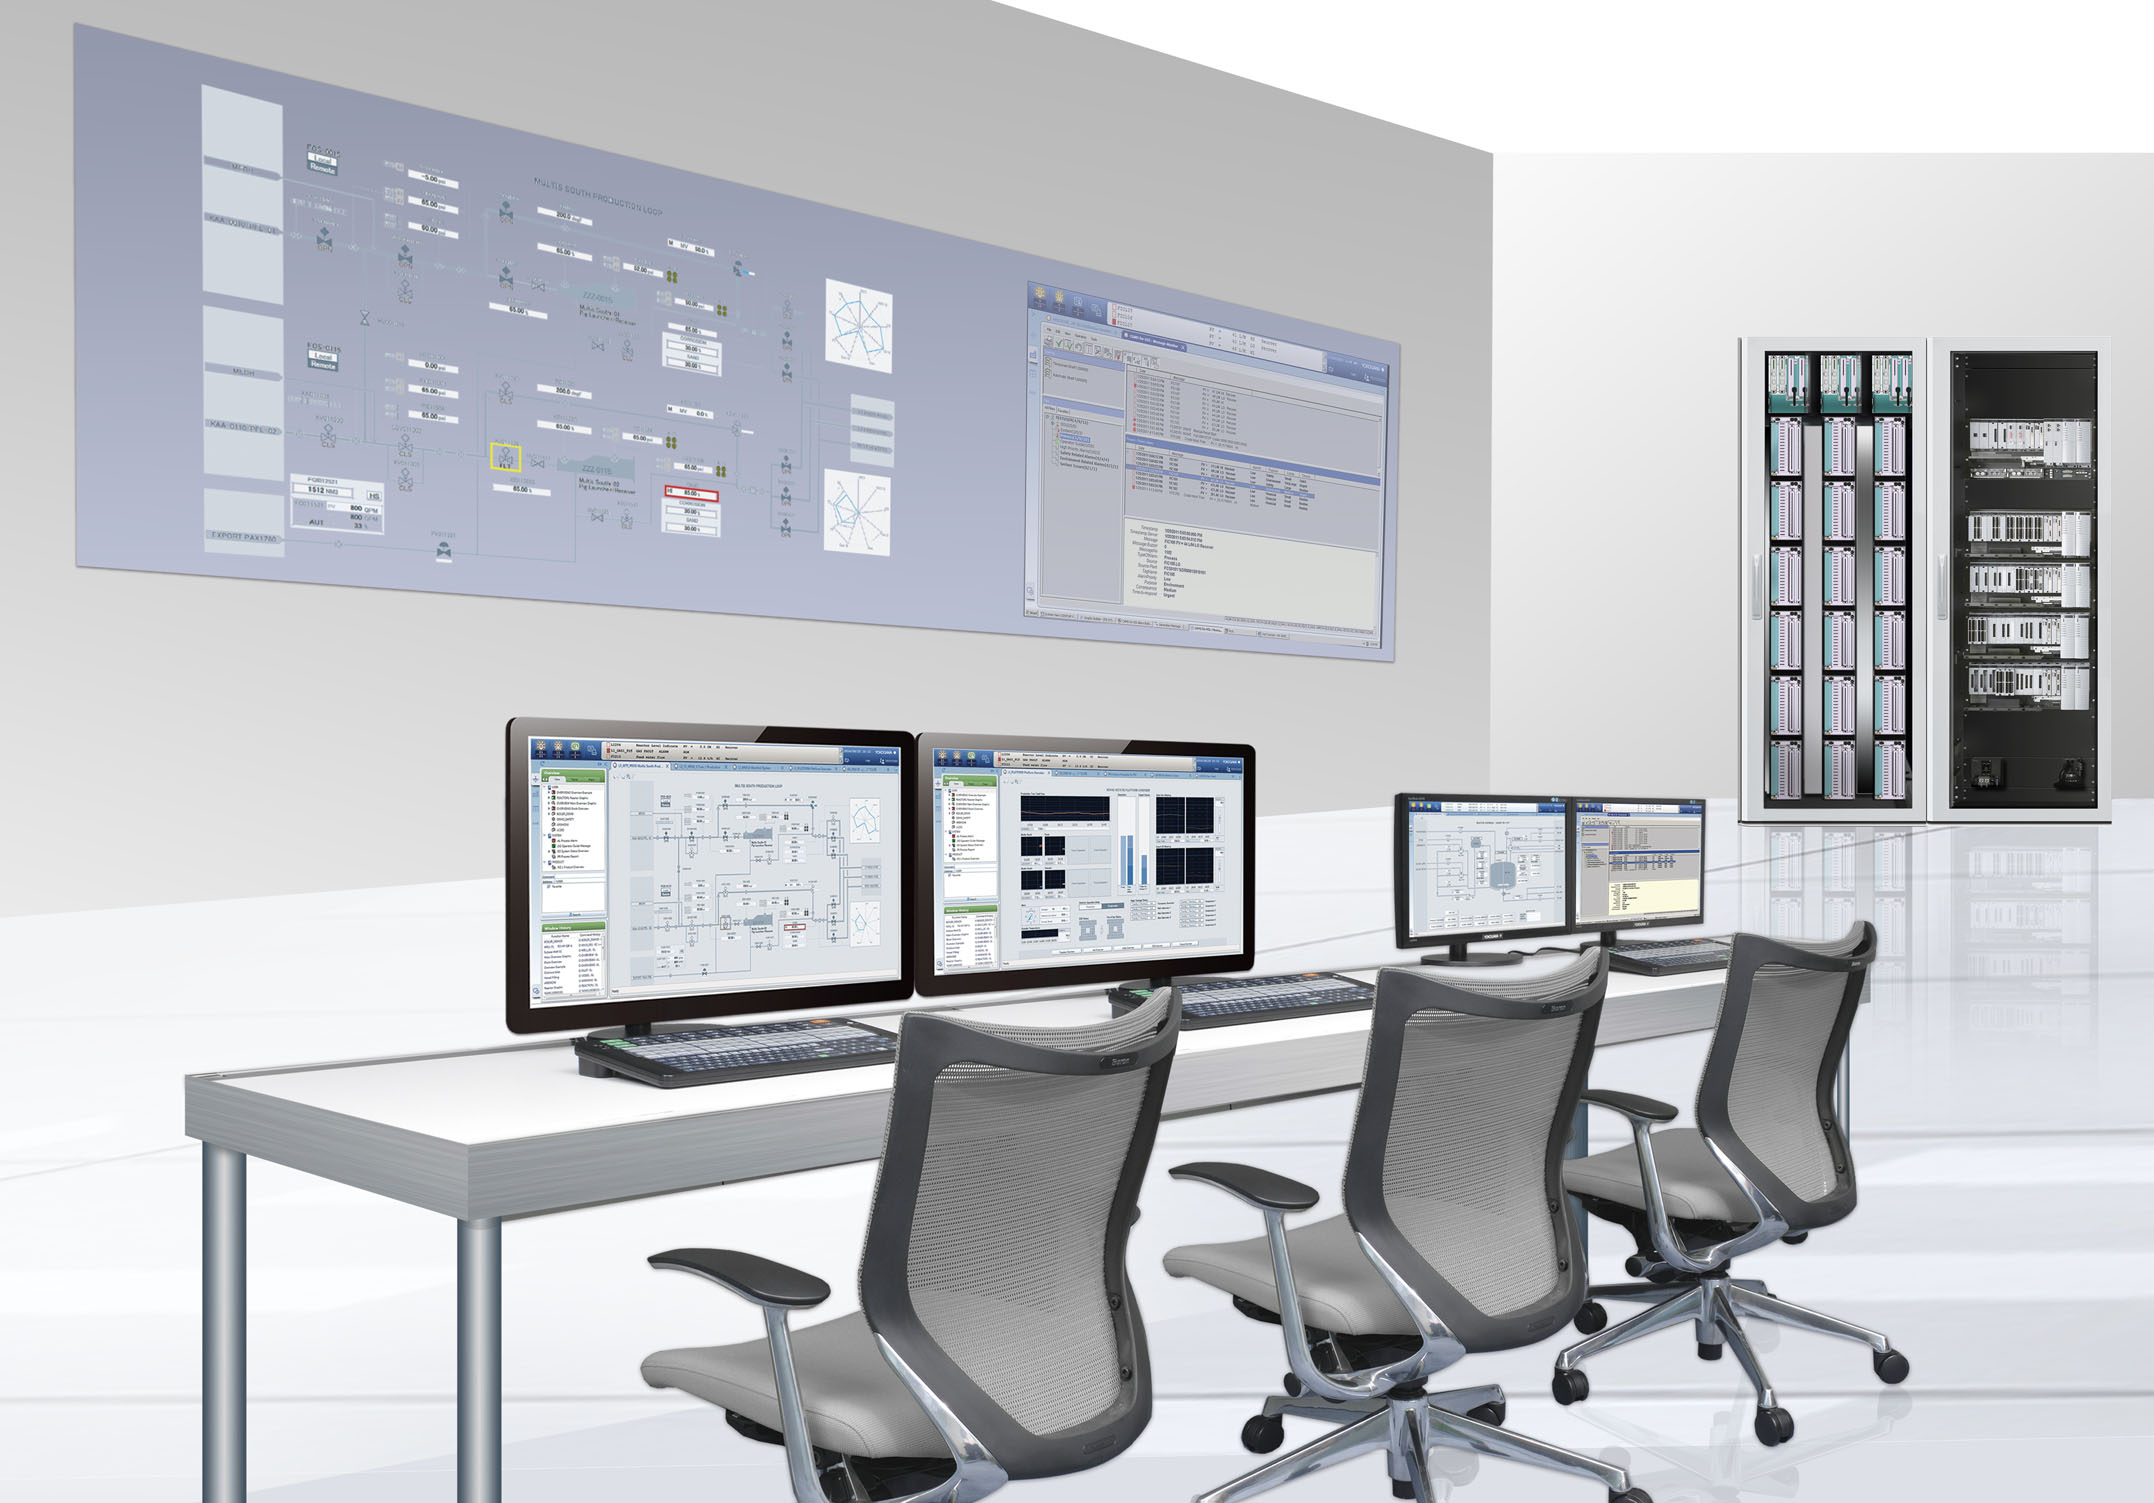 Power and desalination control system